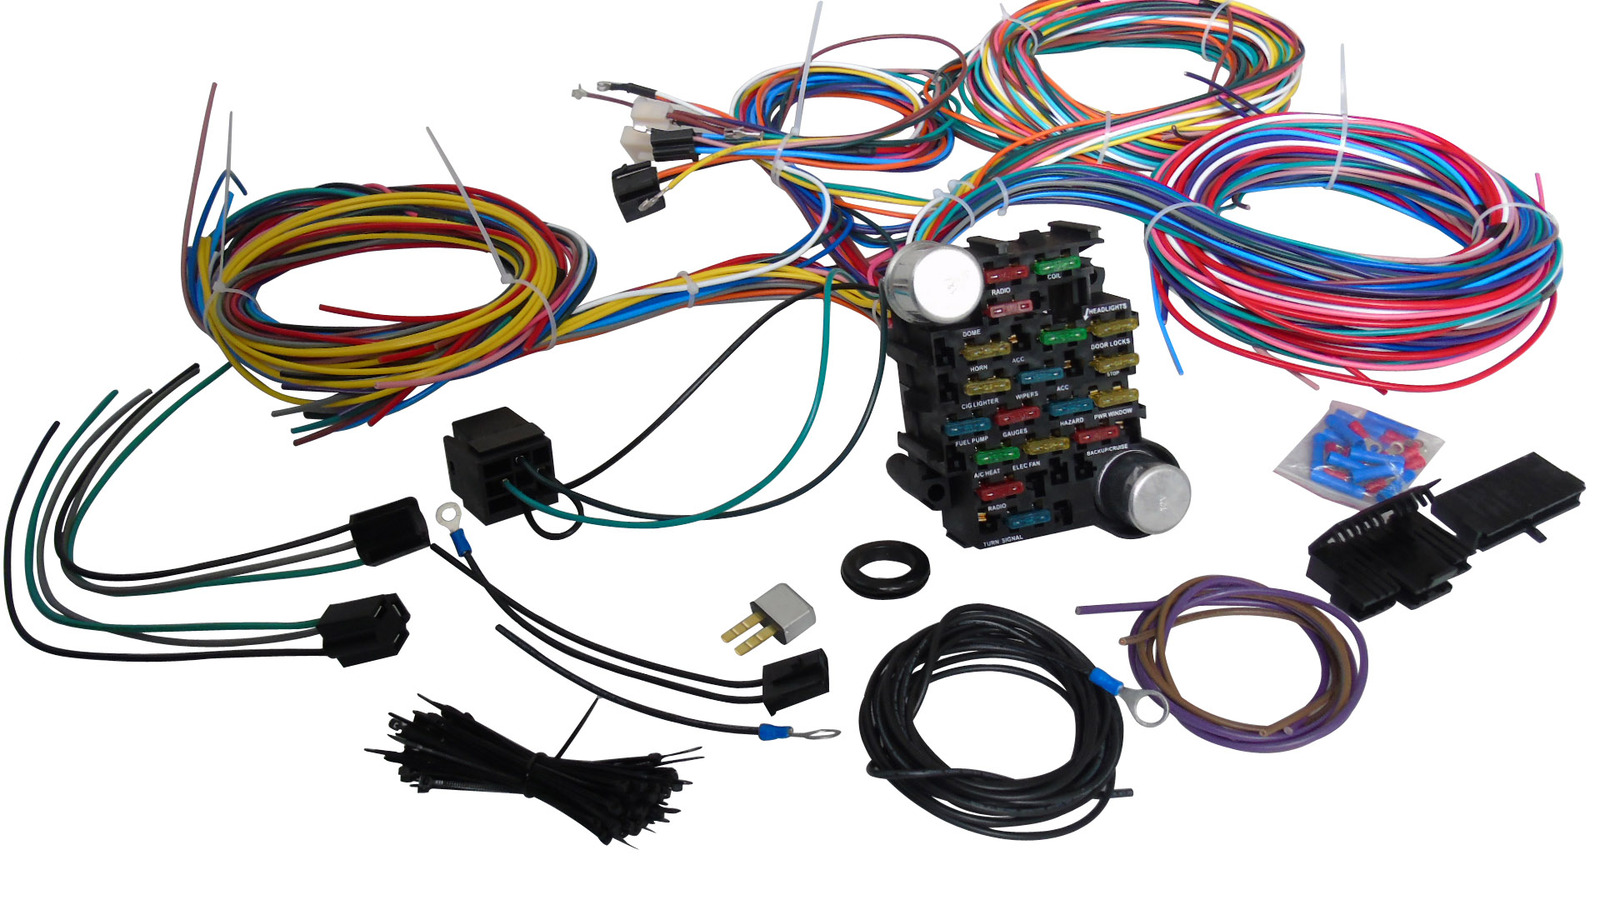 Ez Wiring Harness 93 Mustang Library For A Team Performance 21 Standard Circuit Universal Diagram